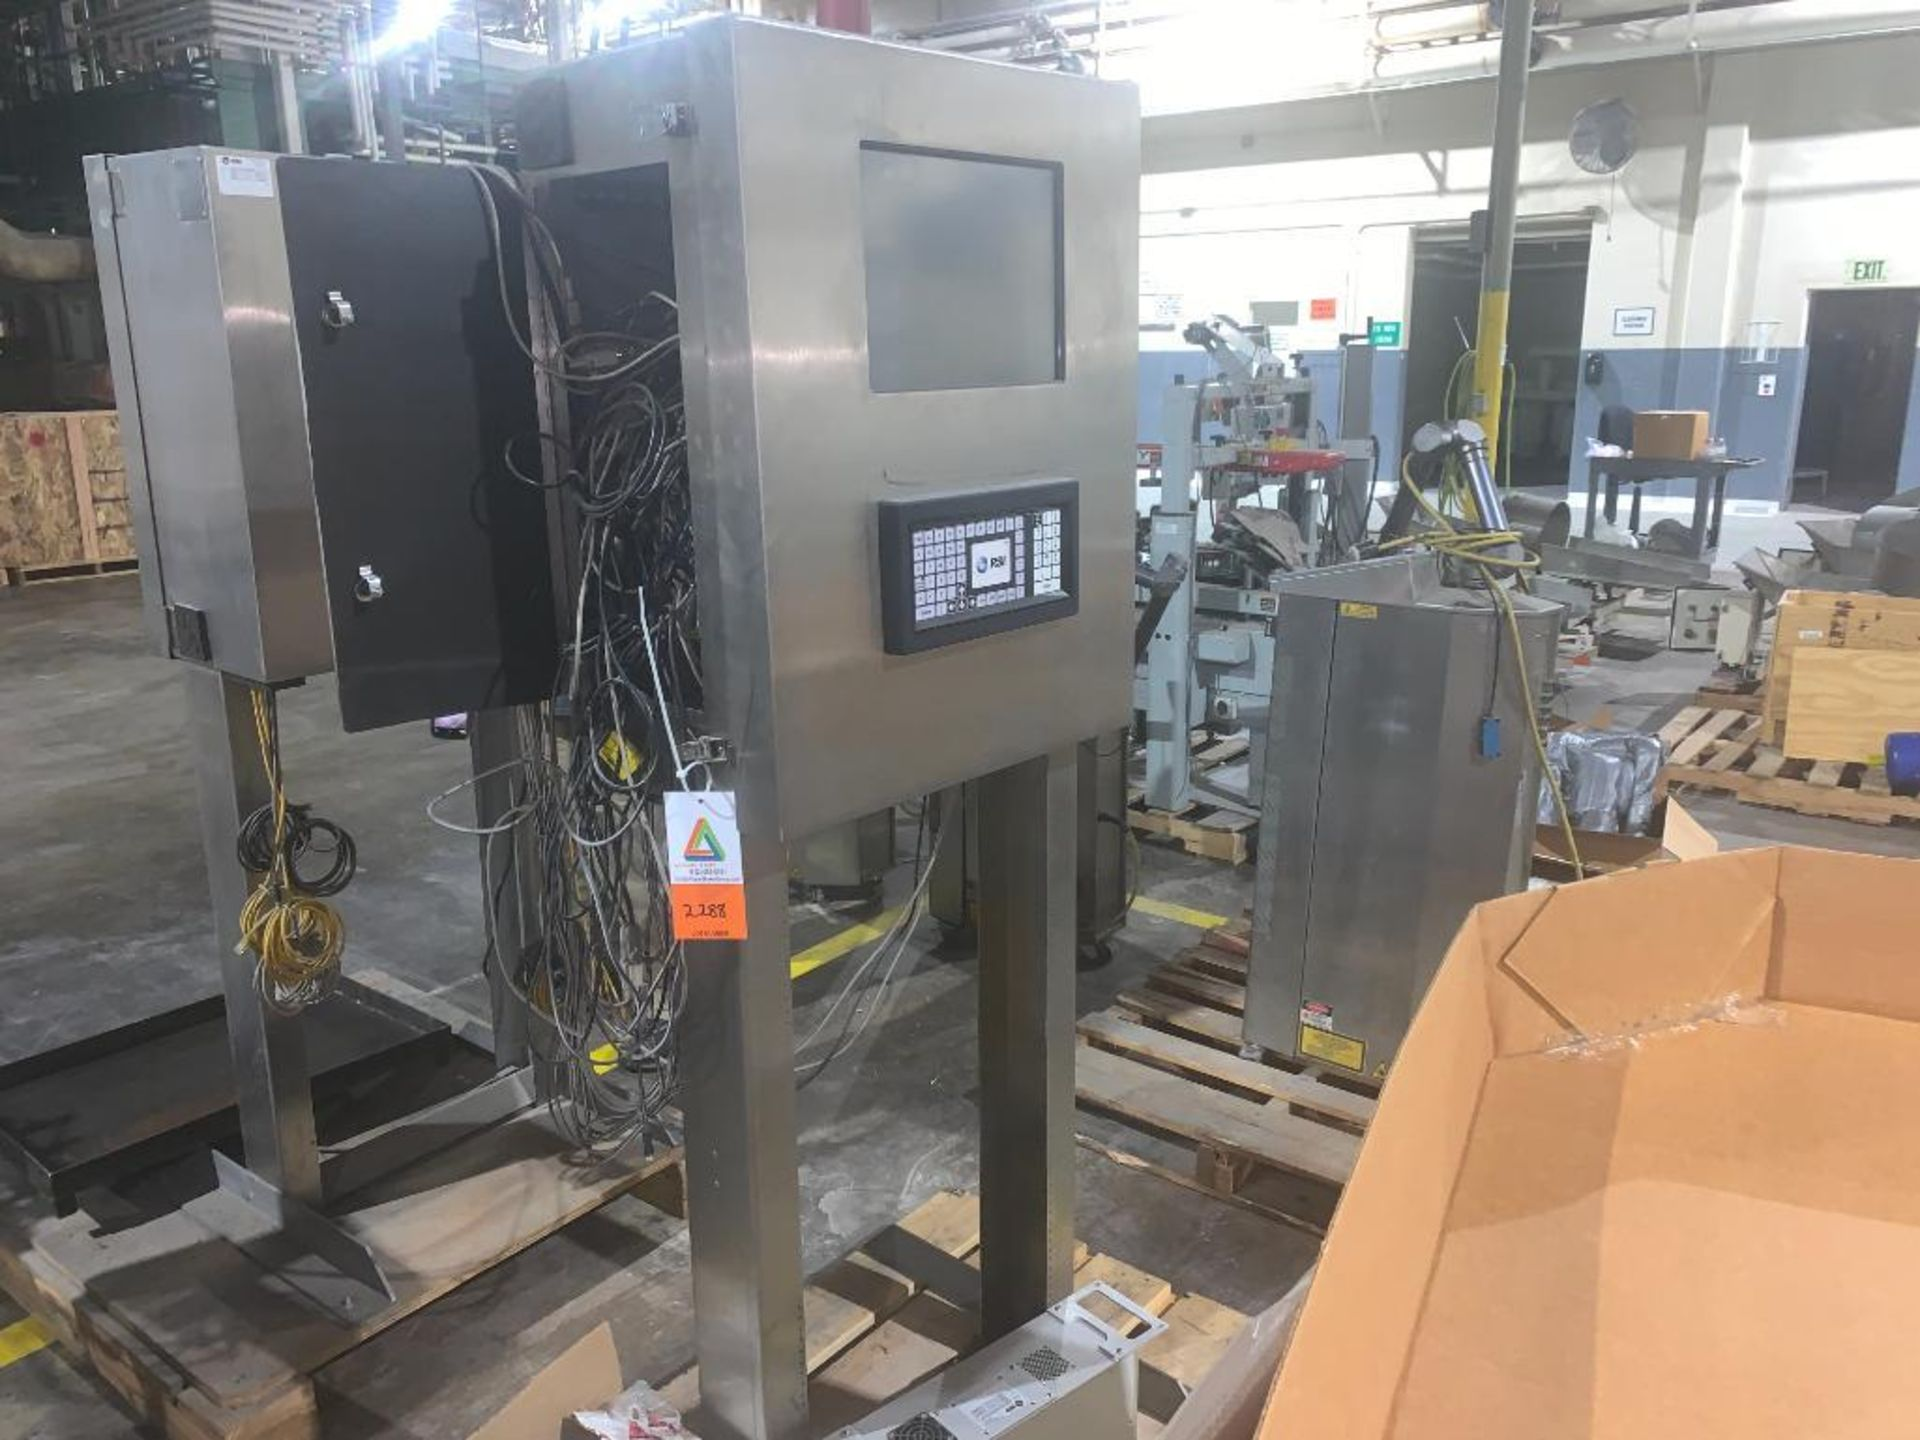 stainless steel pedestal control panel